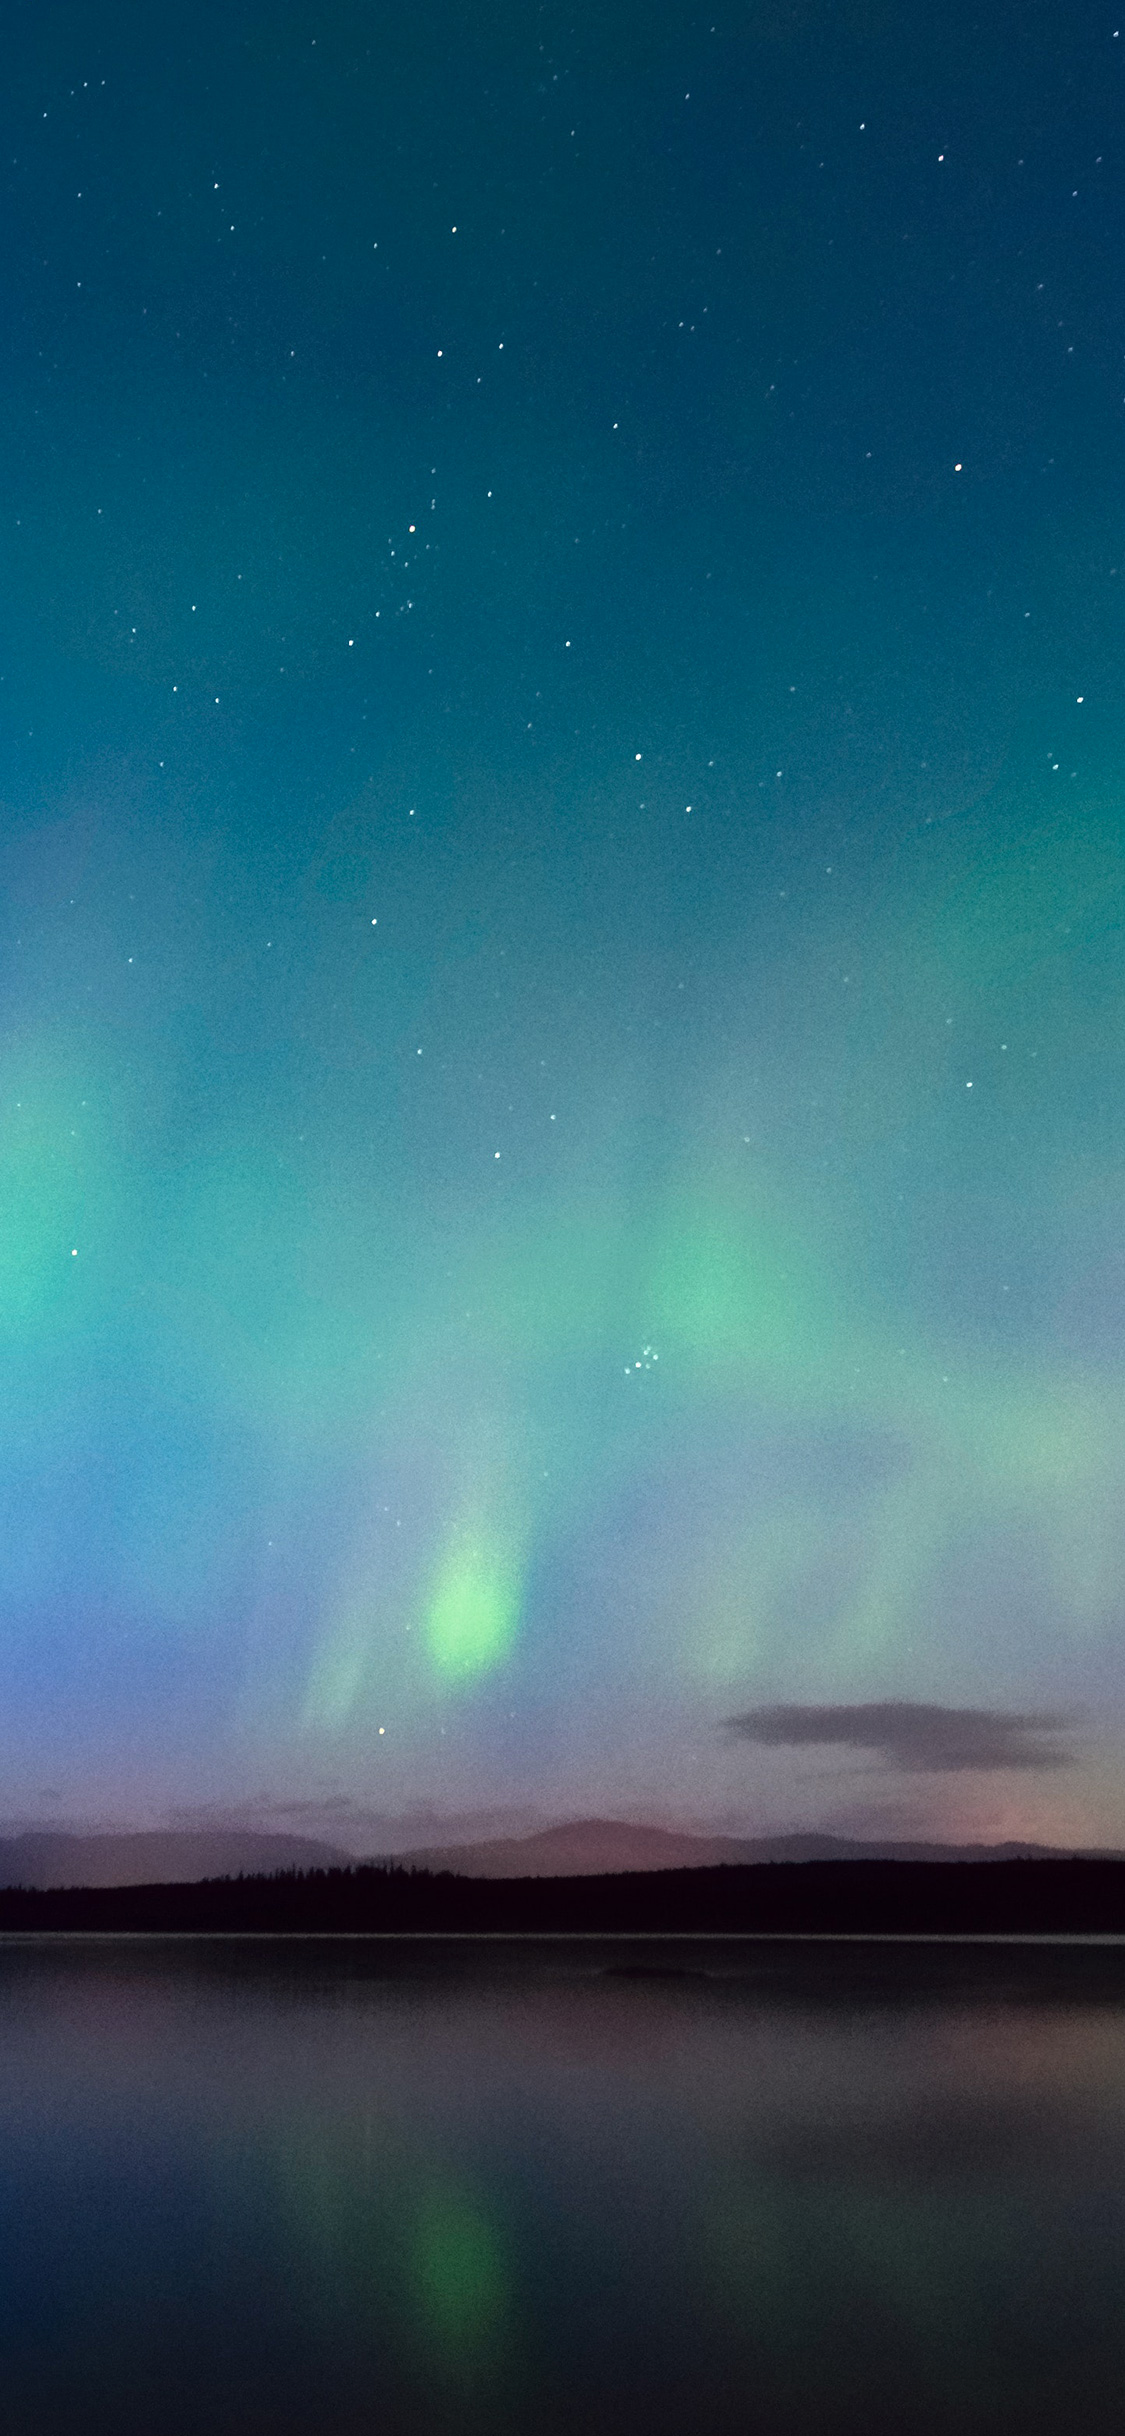 iPhone wallpaper aurora 2 Les 3Wallpapers iPhone du jour (19/03/2017)